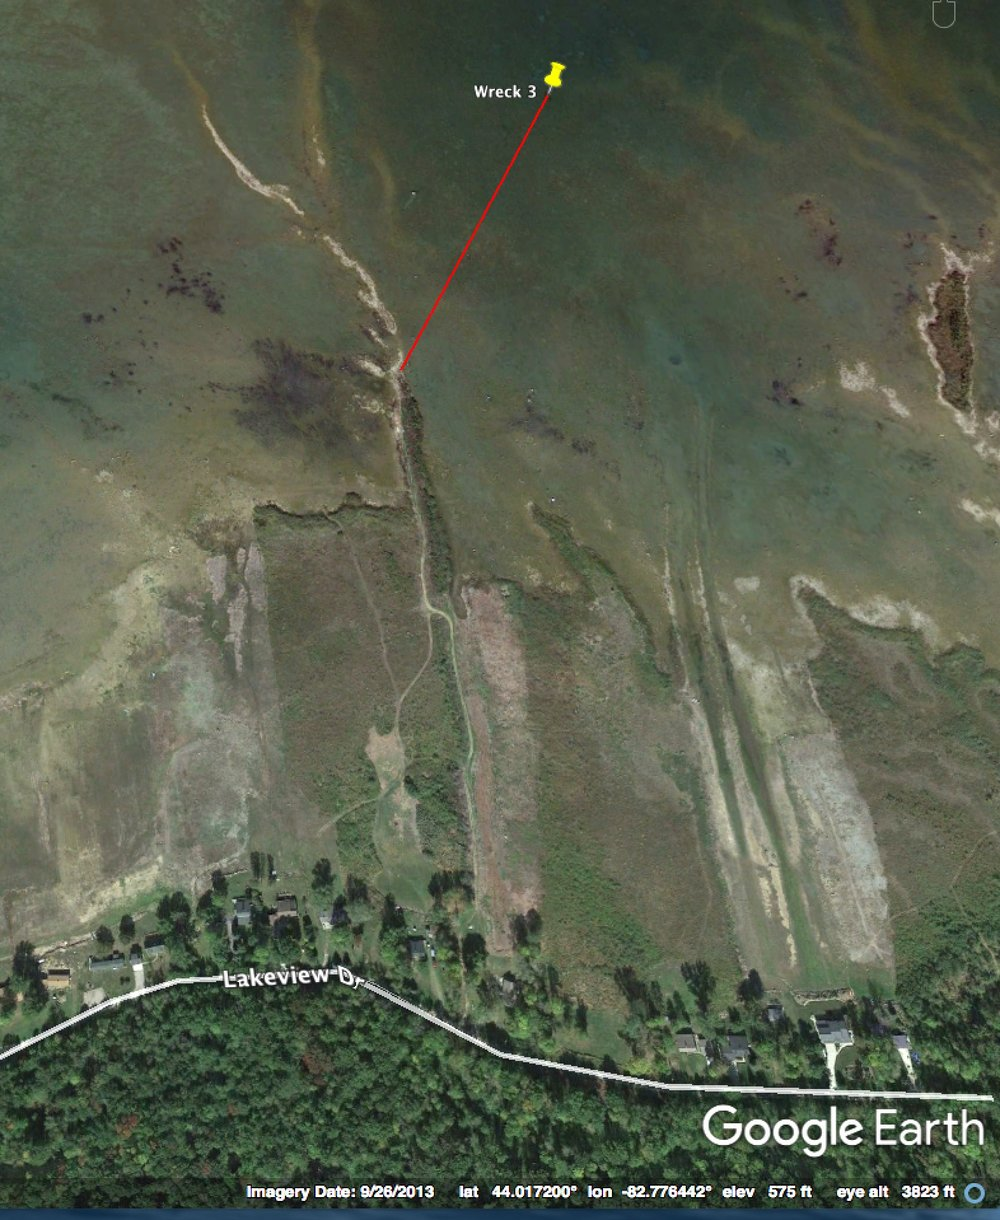 Wreck is 1,300 ft. from Oscabe Point on a bearing of 28 degrees. A trail to the point may provide access. Public parking is not verified. Please respect private property.